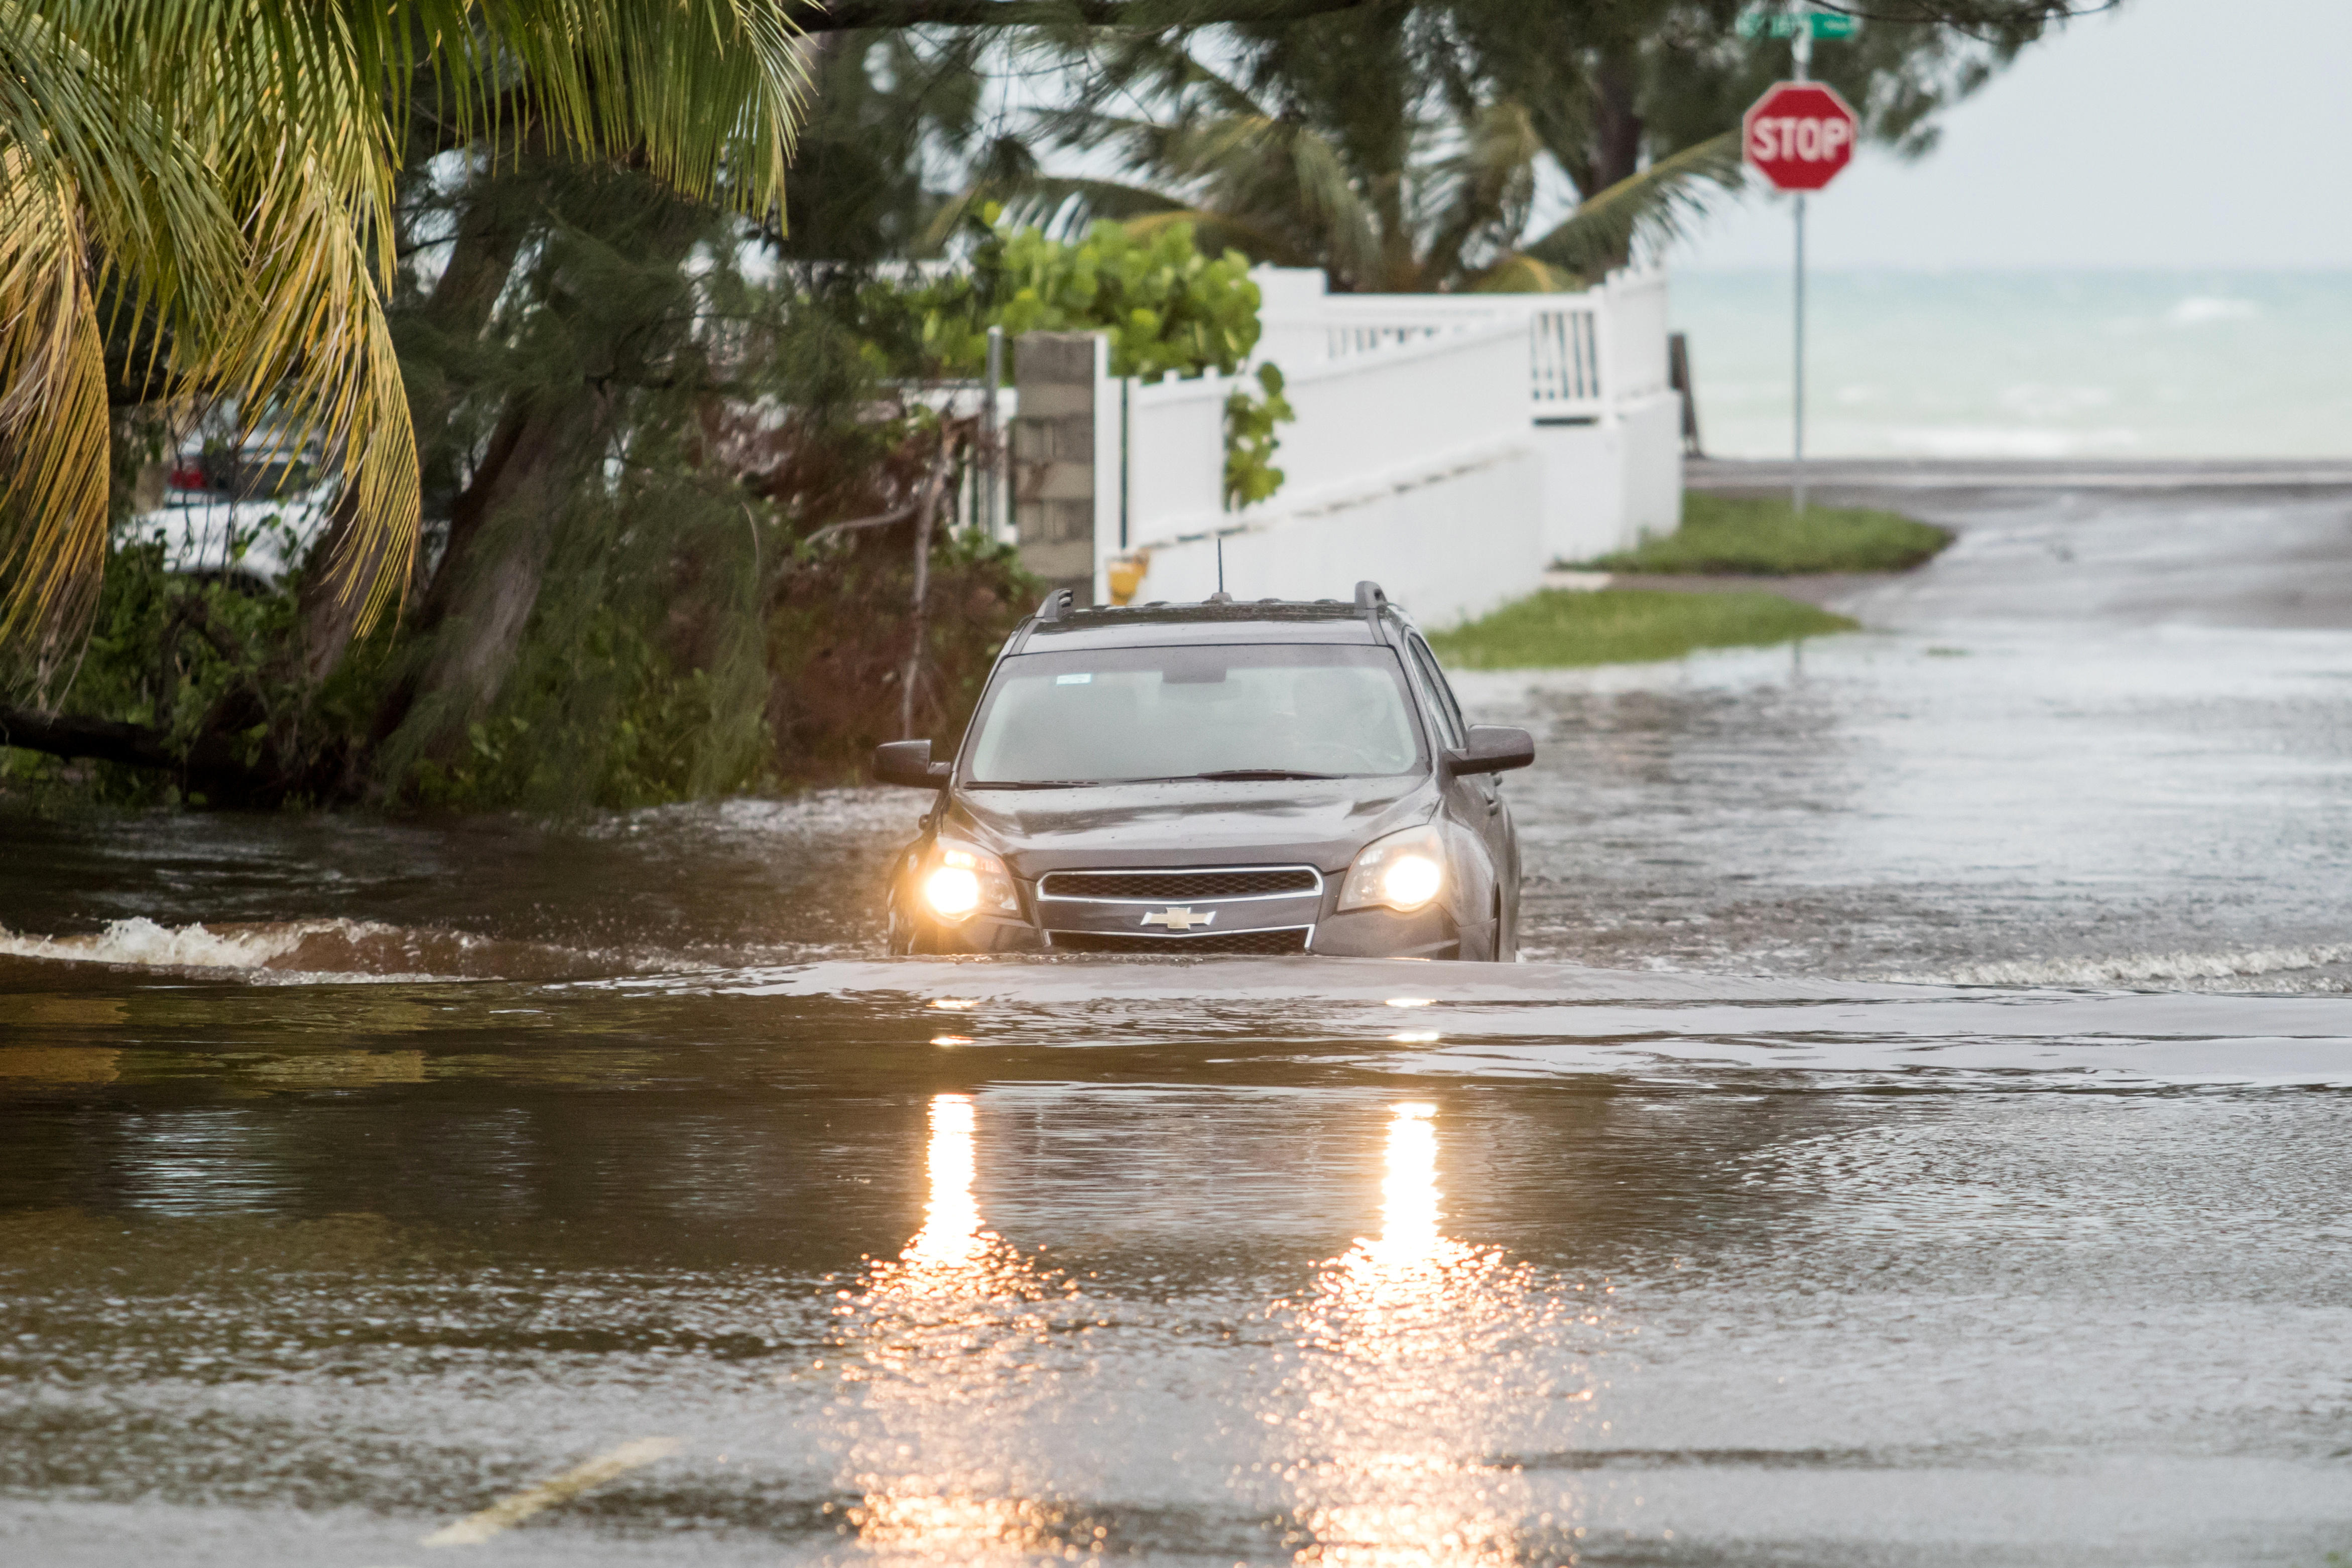 A car drives through a flooded street after the effects of Hurricane Dorian arrived in Nassau